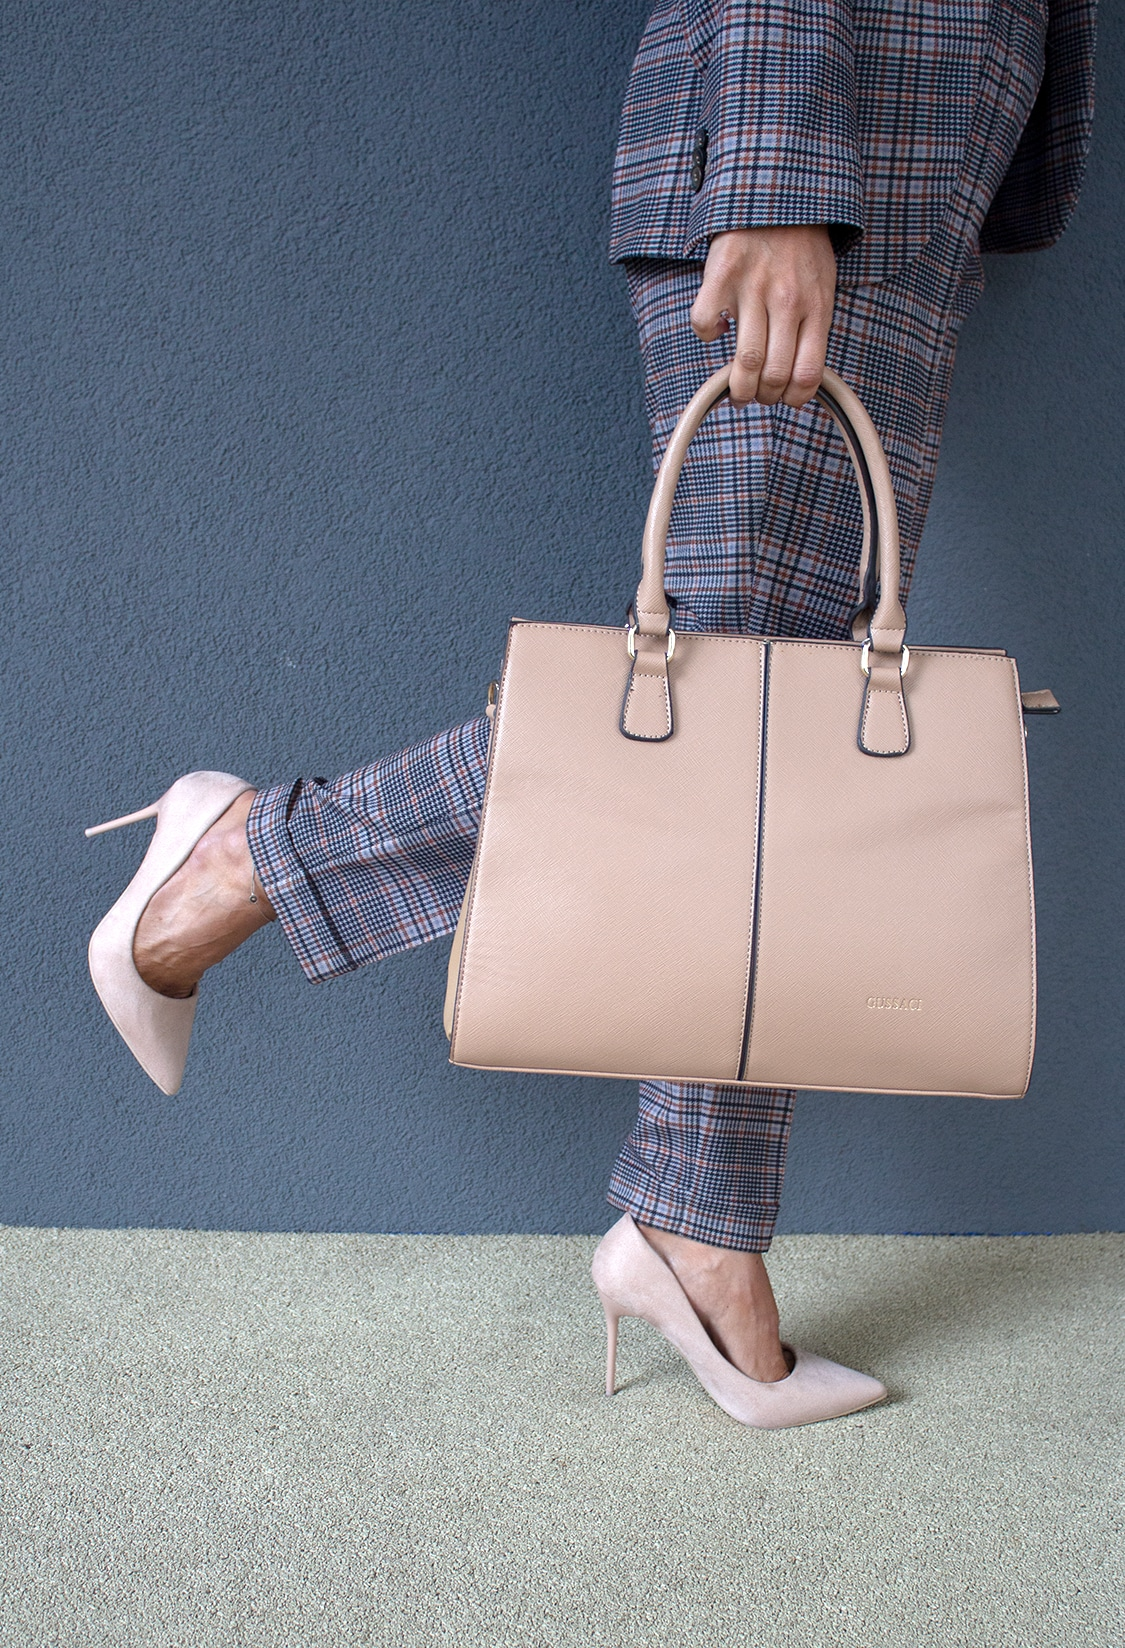 Herbst Outfit City Magdalena Henkel menafit Business